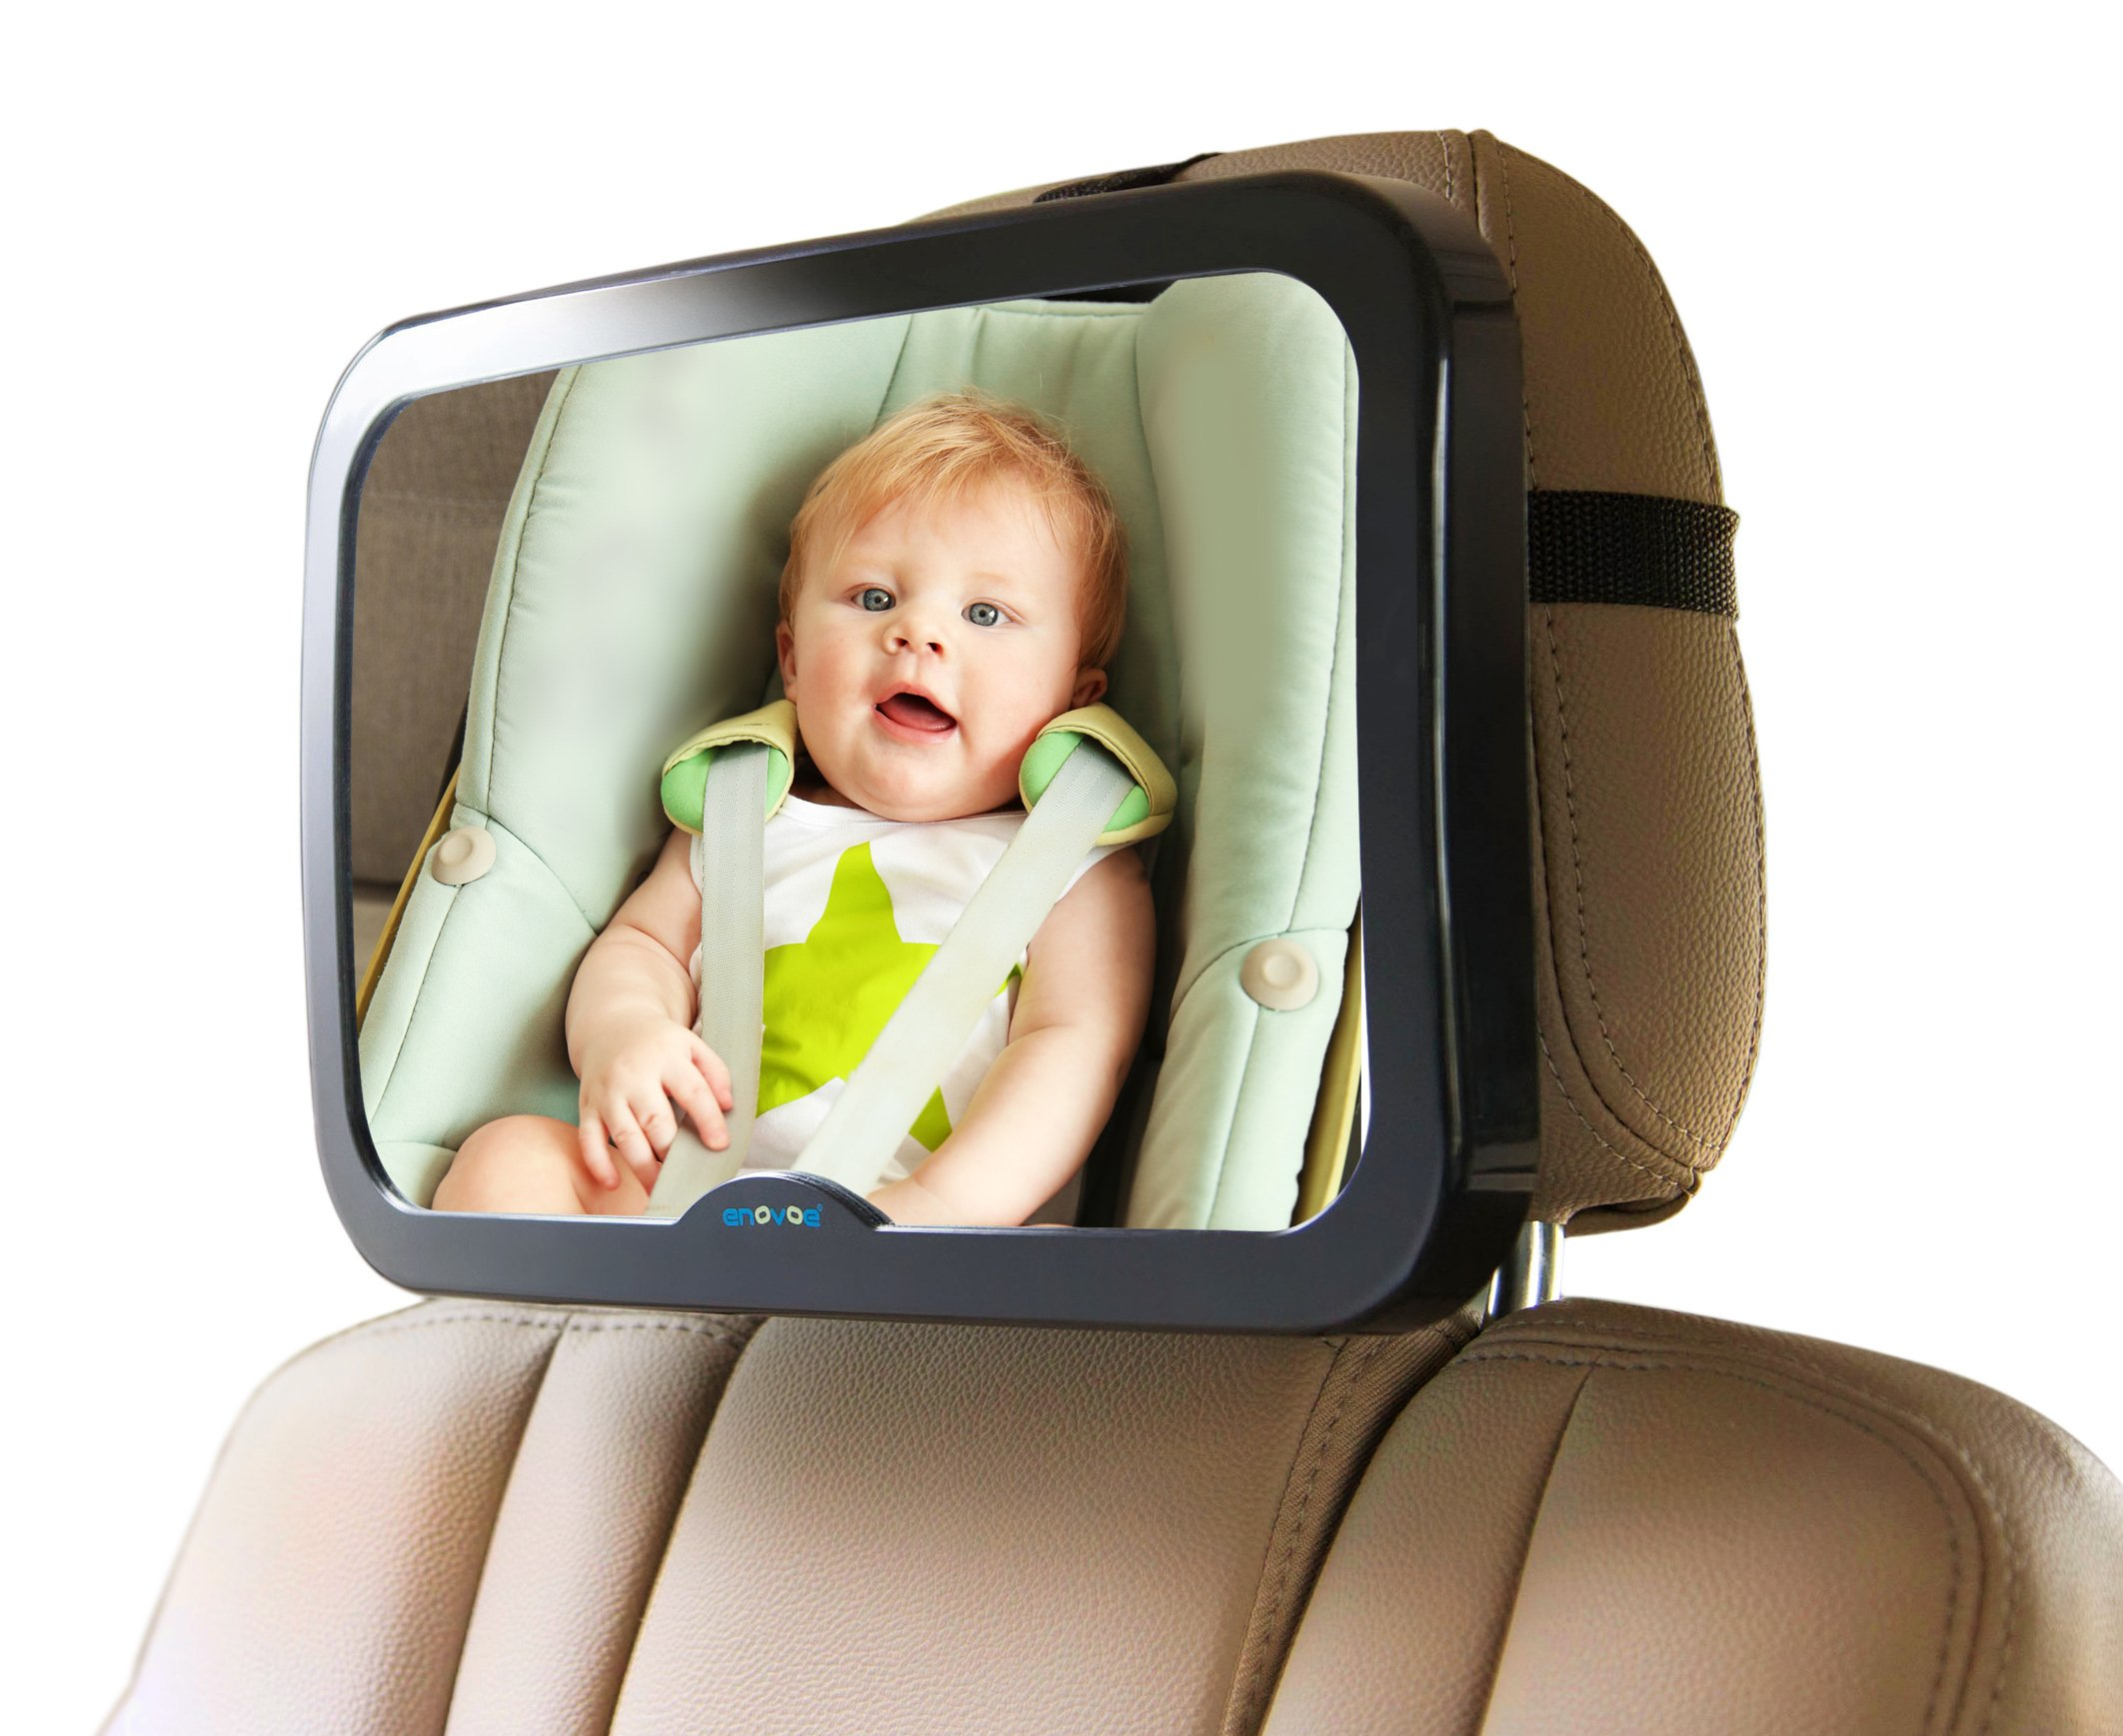 Baby Mirror for Car with Bonus Cleaning Cloth - Wide, Convex Rear Facing Backseat Mirror is Shatterproof and Adjustable - 360 Swivel Car Seat Mirror Helps You Keep an Eye on Your Infant or Child by Enovoe